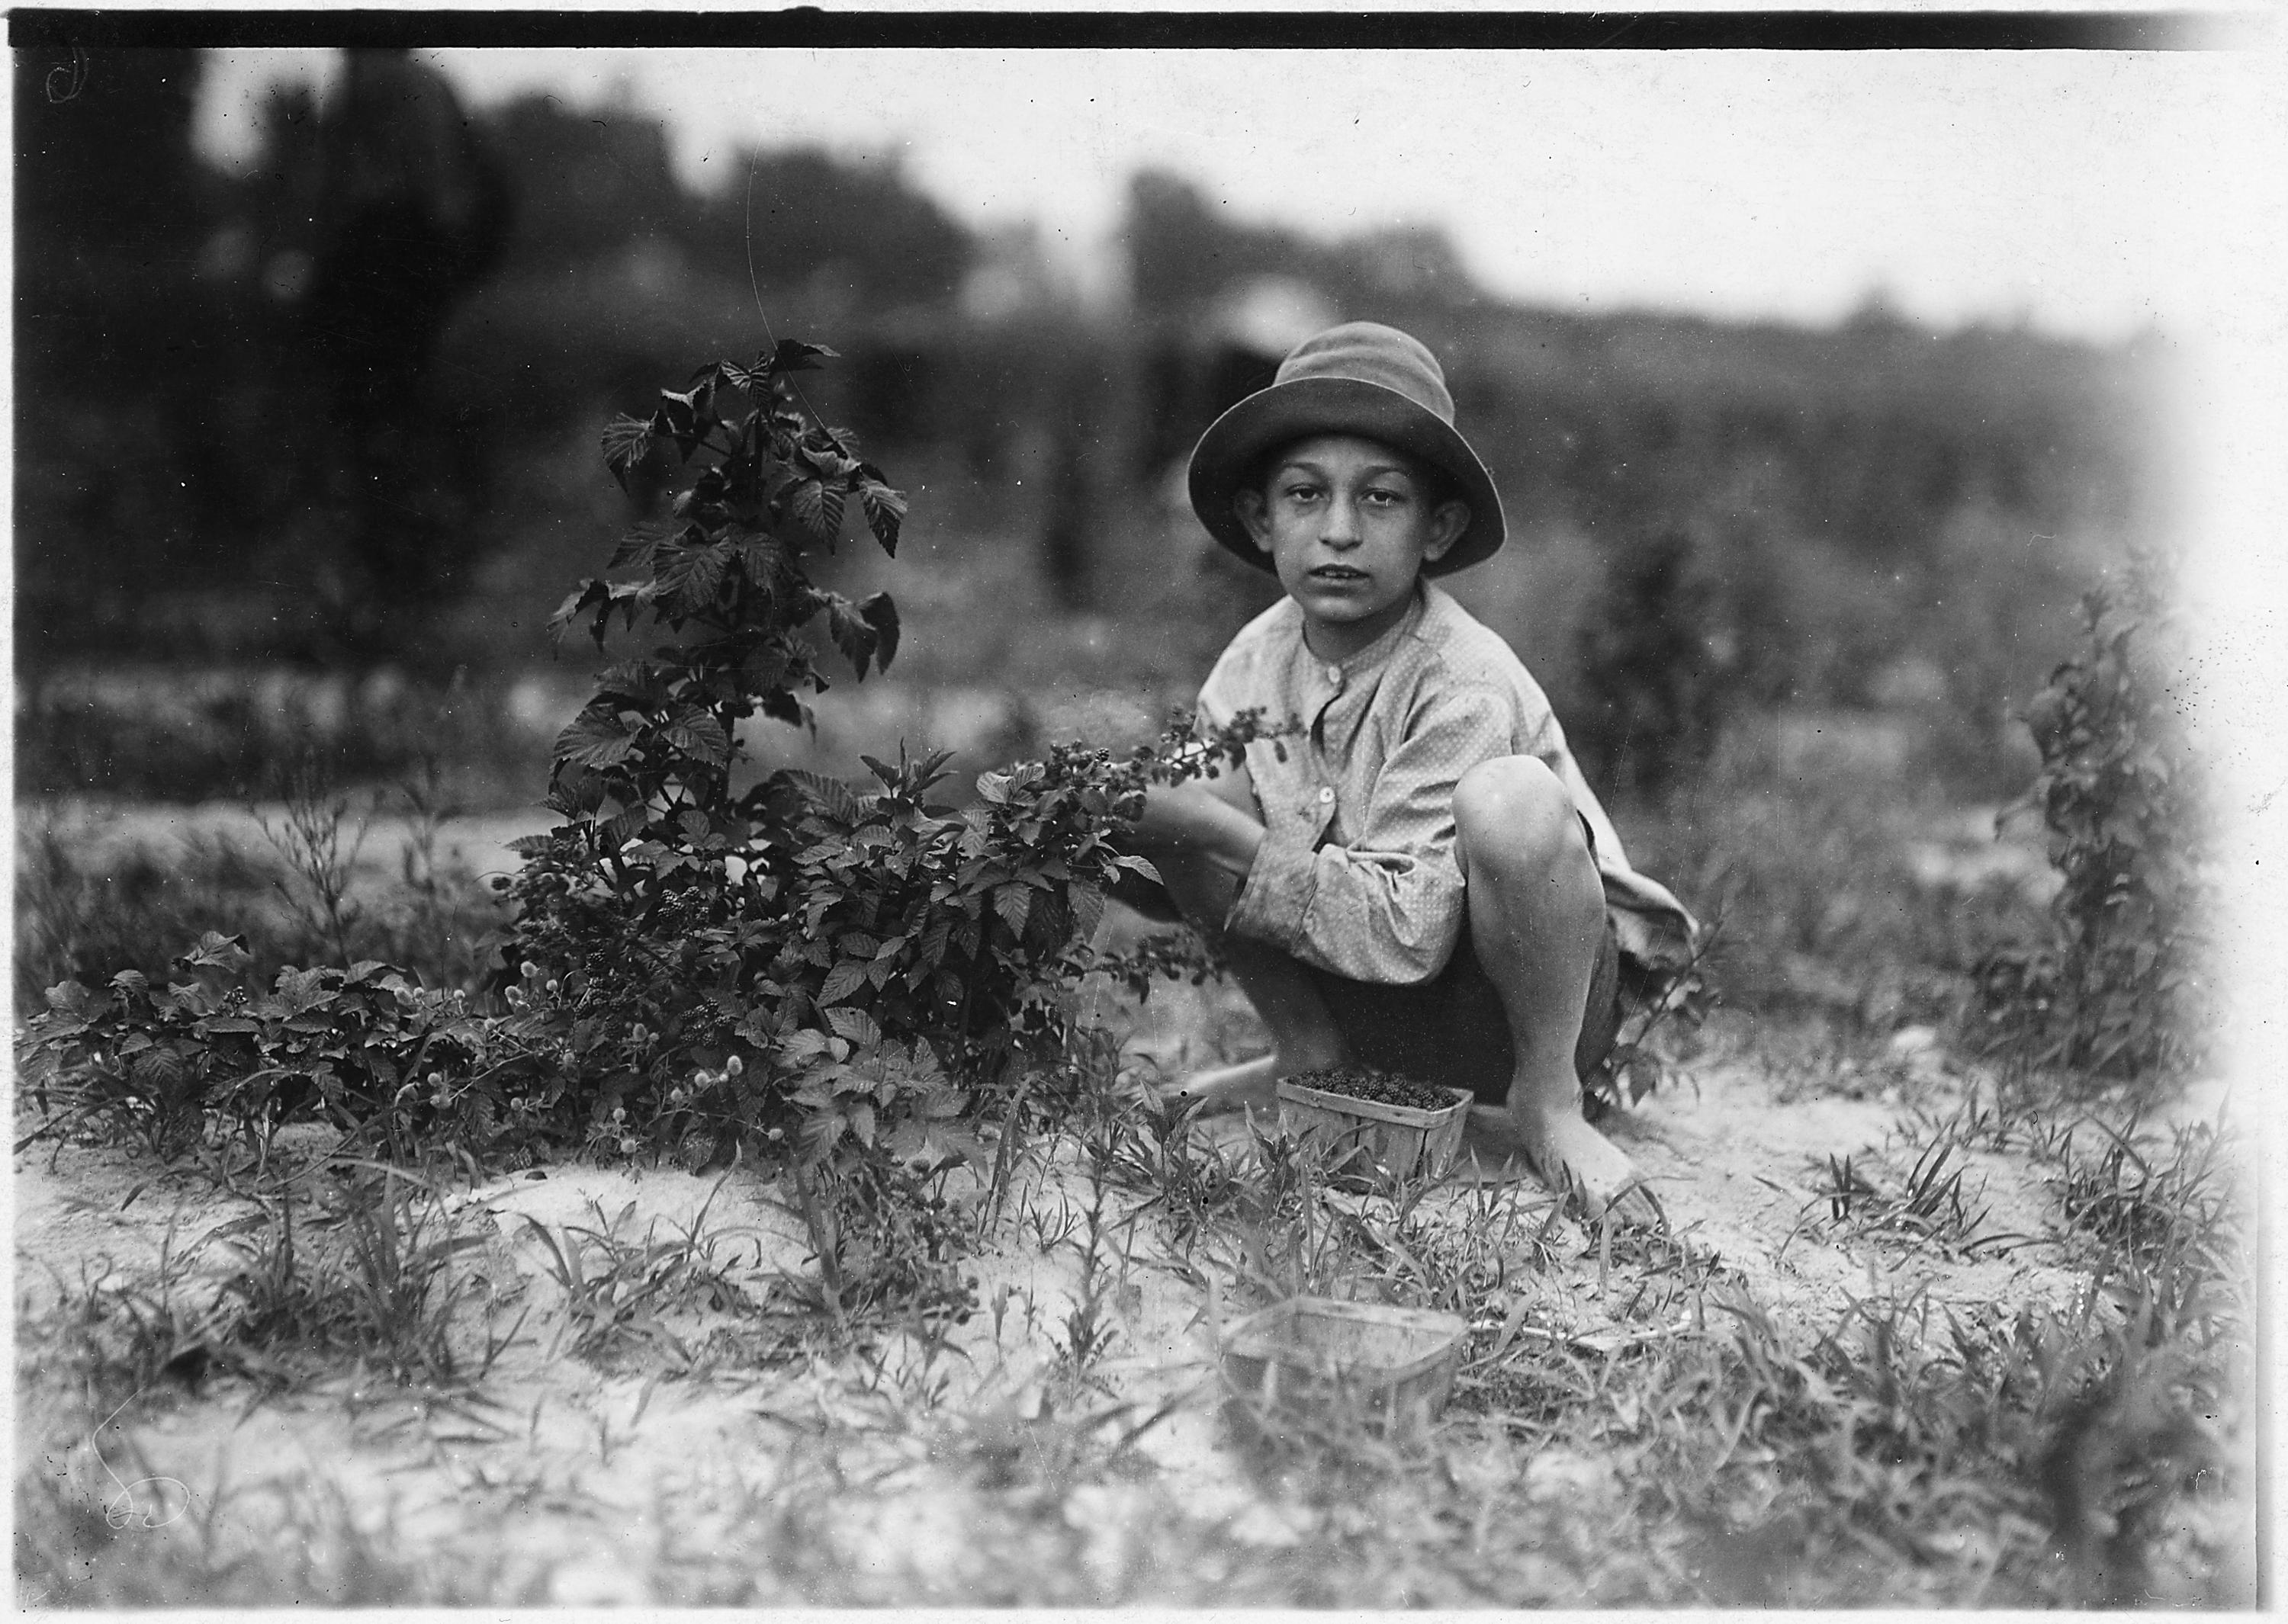 Great Photo of Boy Picking Berries (1909)